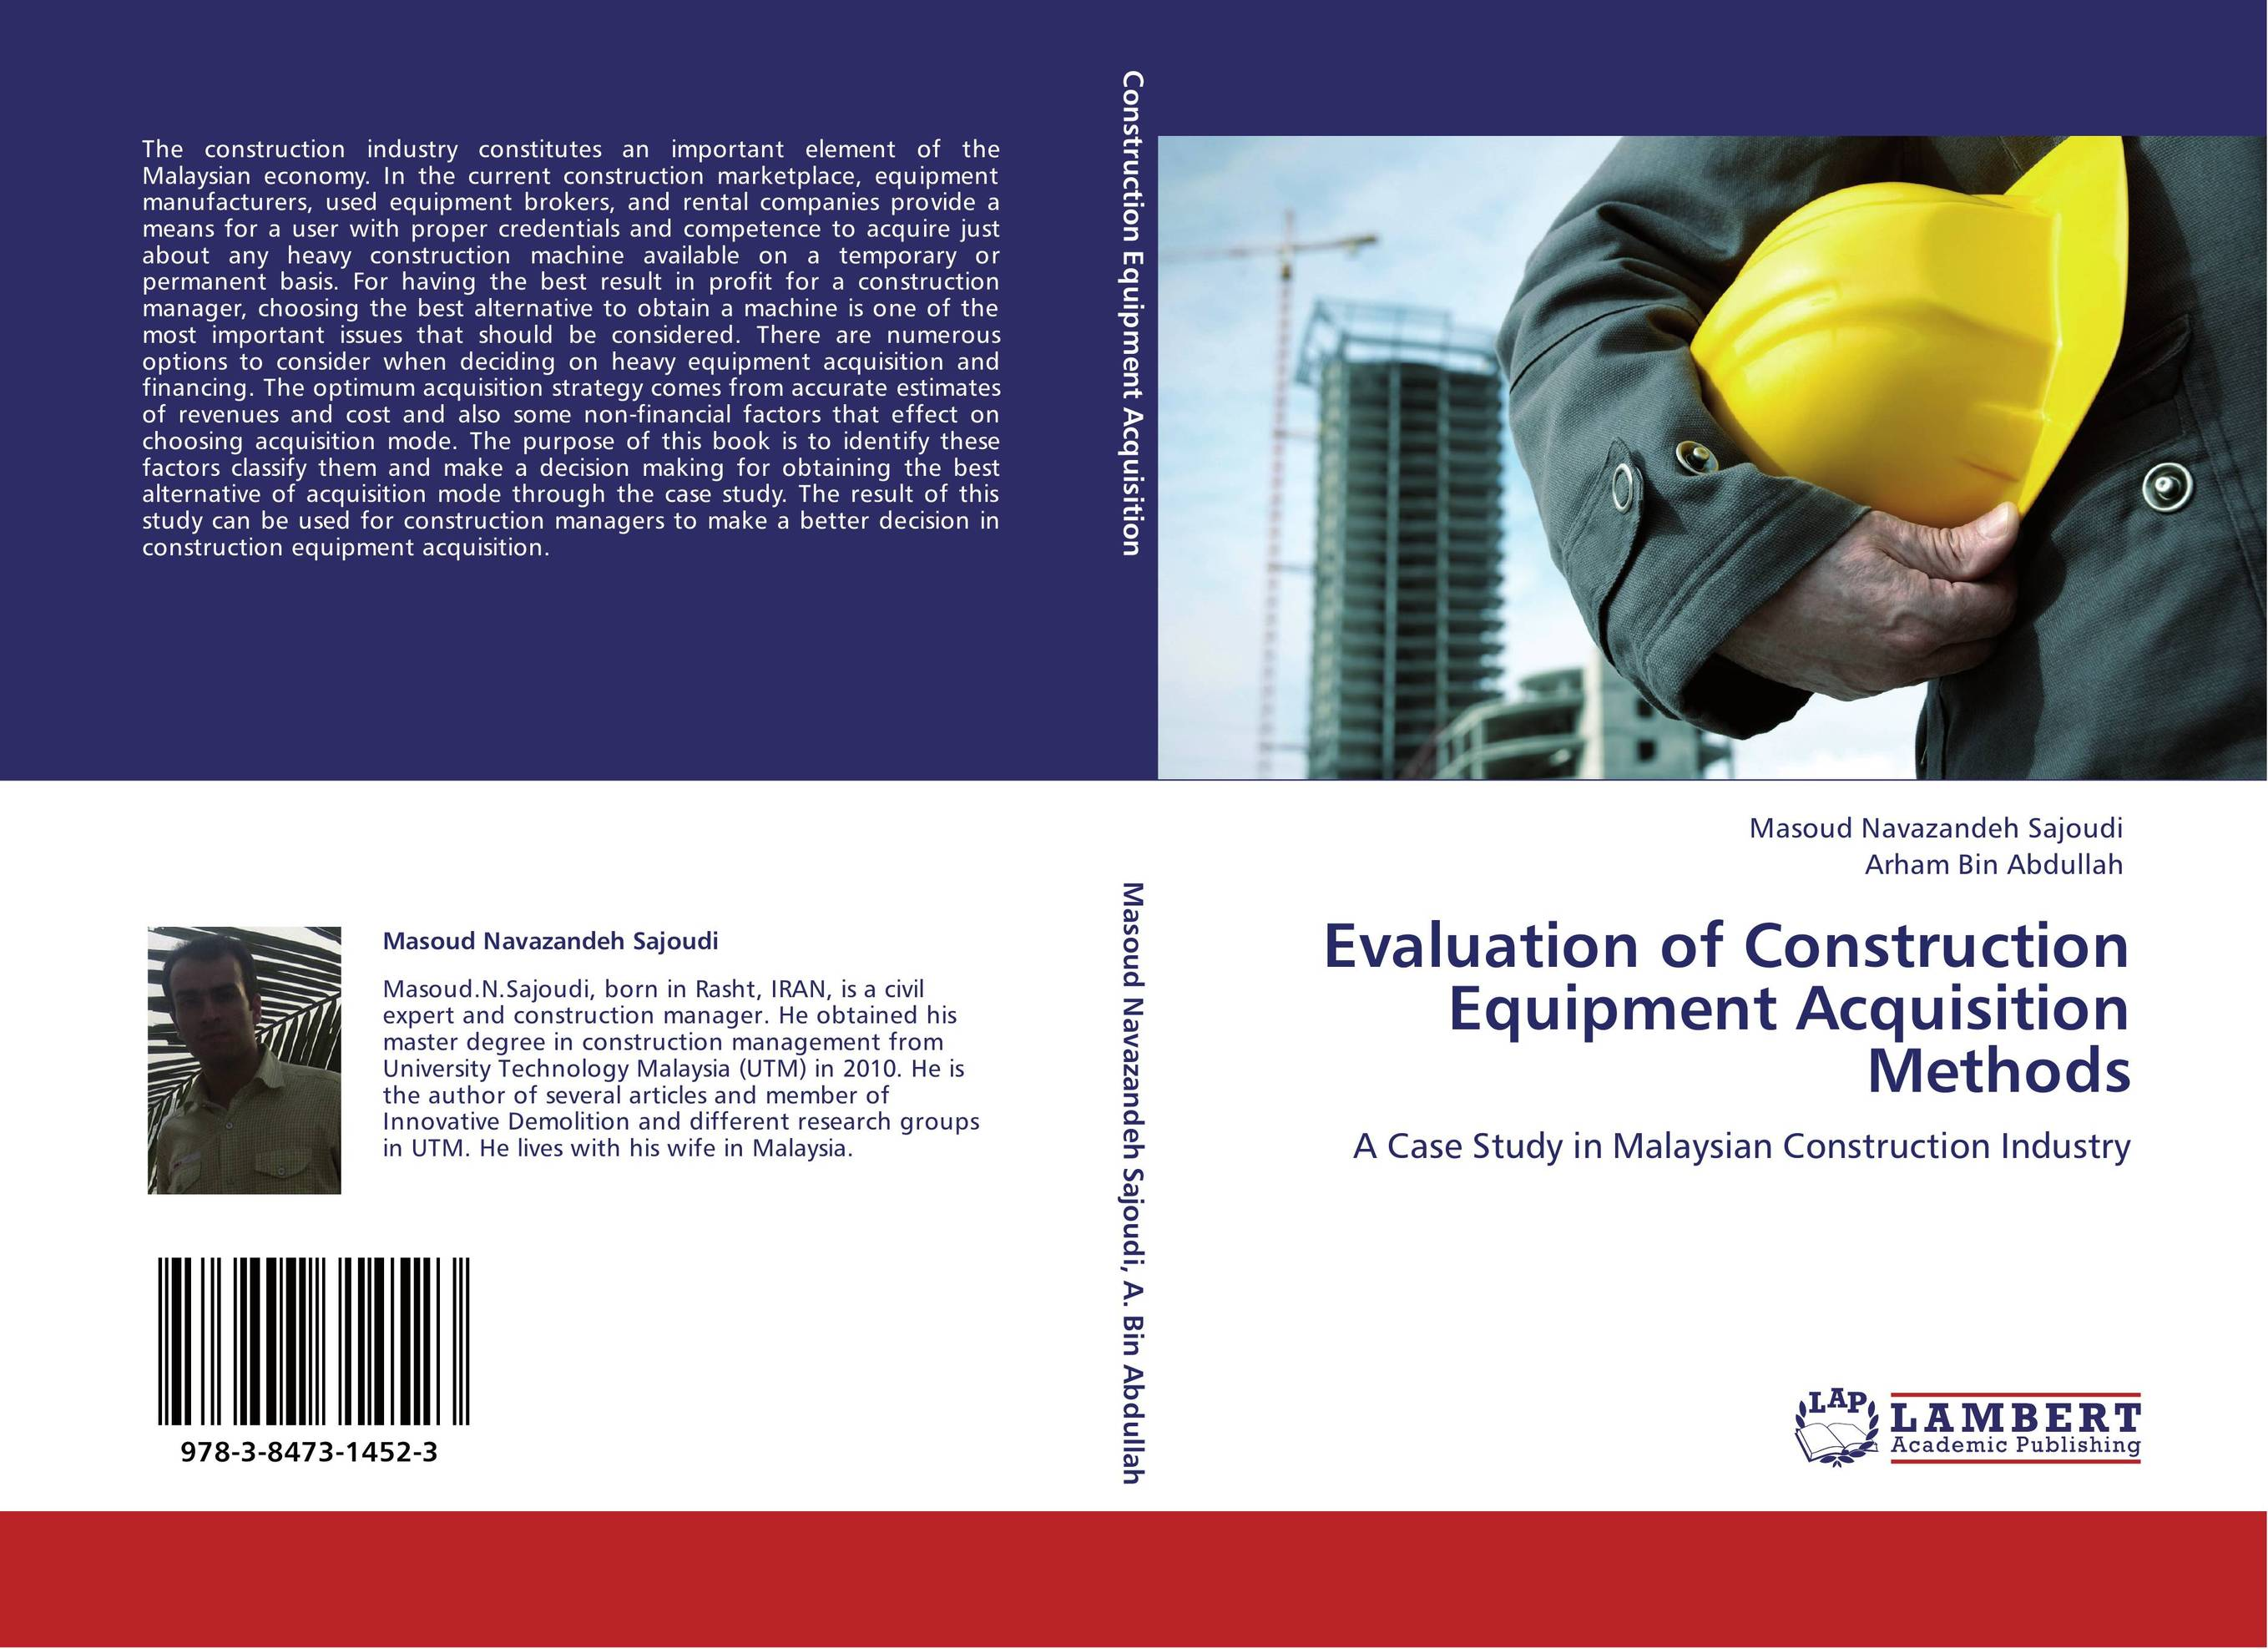 causes and effects of delay in malaysian construction construction essay Delay in construction project has a negative effect on clients, contractors, and consultants in terms of growth in adversarial relationships, mistrust, litigation, arbitration, and cash-flow problems a construction project may be regarded as a successful endeavor until it satisfies the cost, time, and.